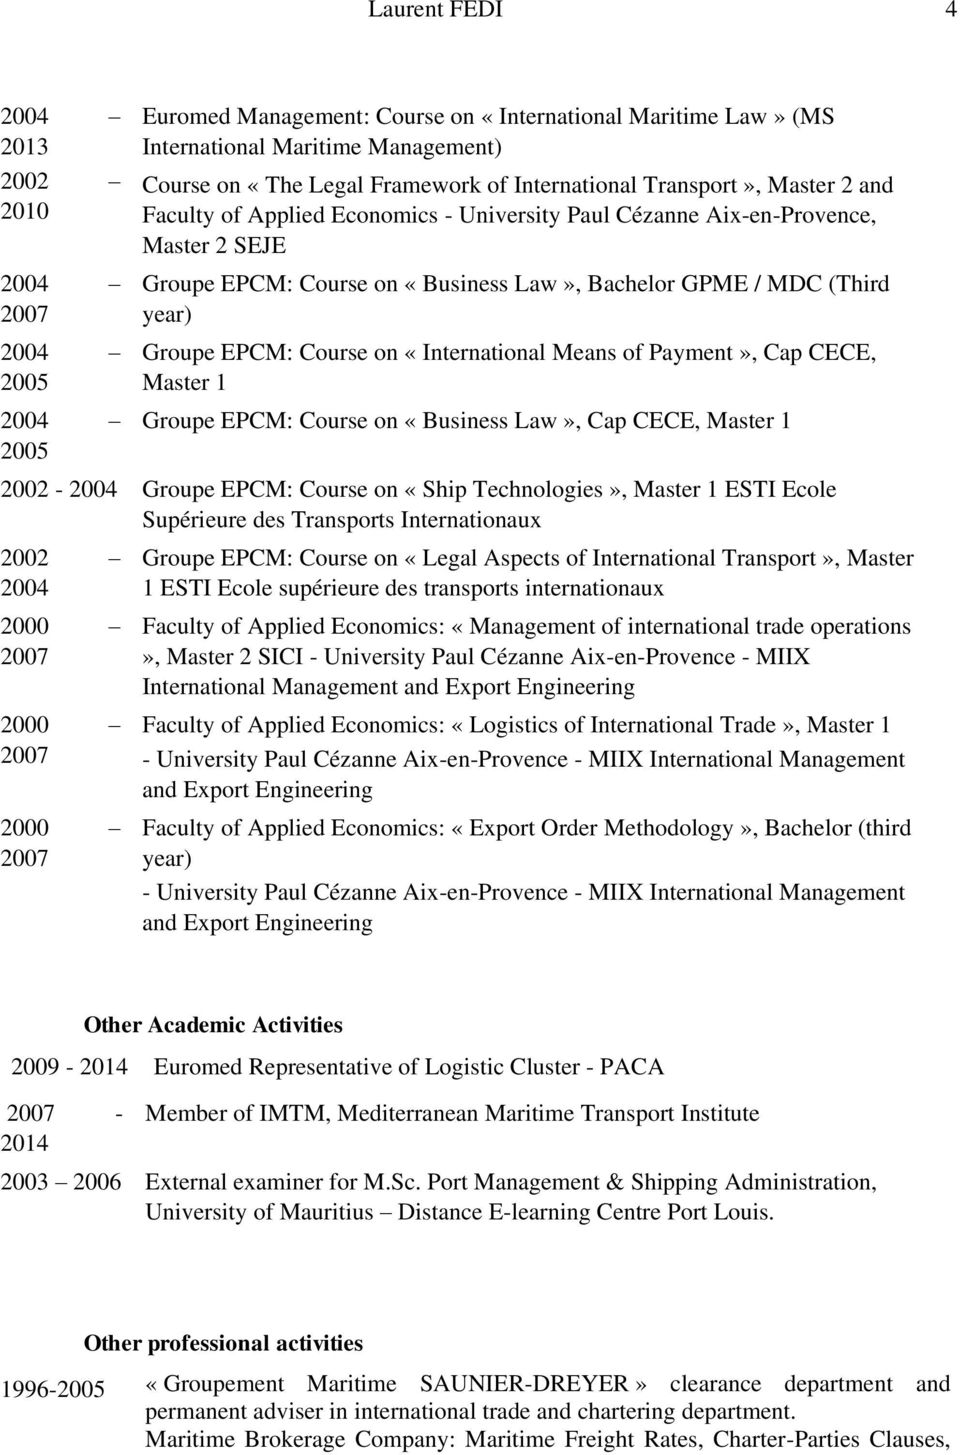 Groupe EPCM: Course on «International Means of Payment», Cap CECE, Master 1 Groupe EPCM: Course on «Business Law», Cap CECE, Master 1 2002-2004 Groupe EPCM: Course on «Ship Technologies», Master 1